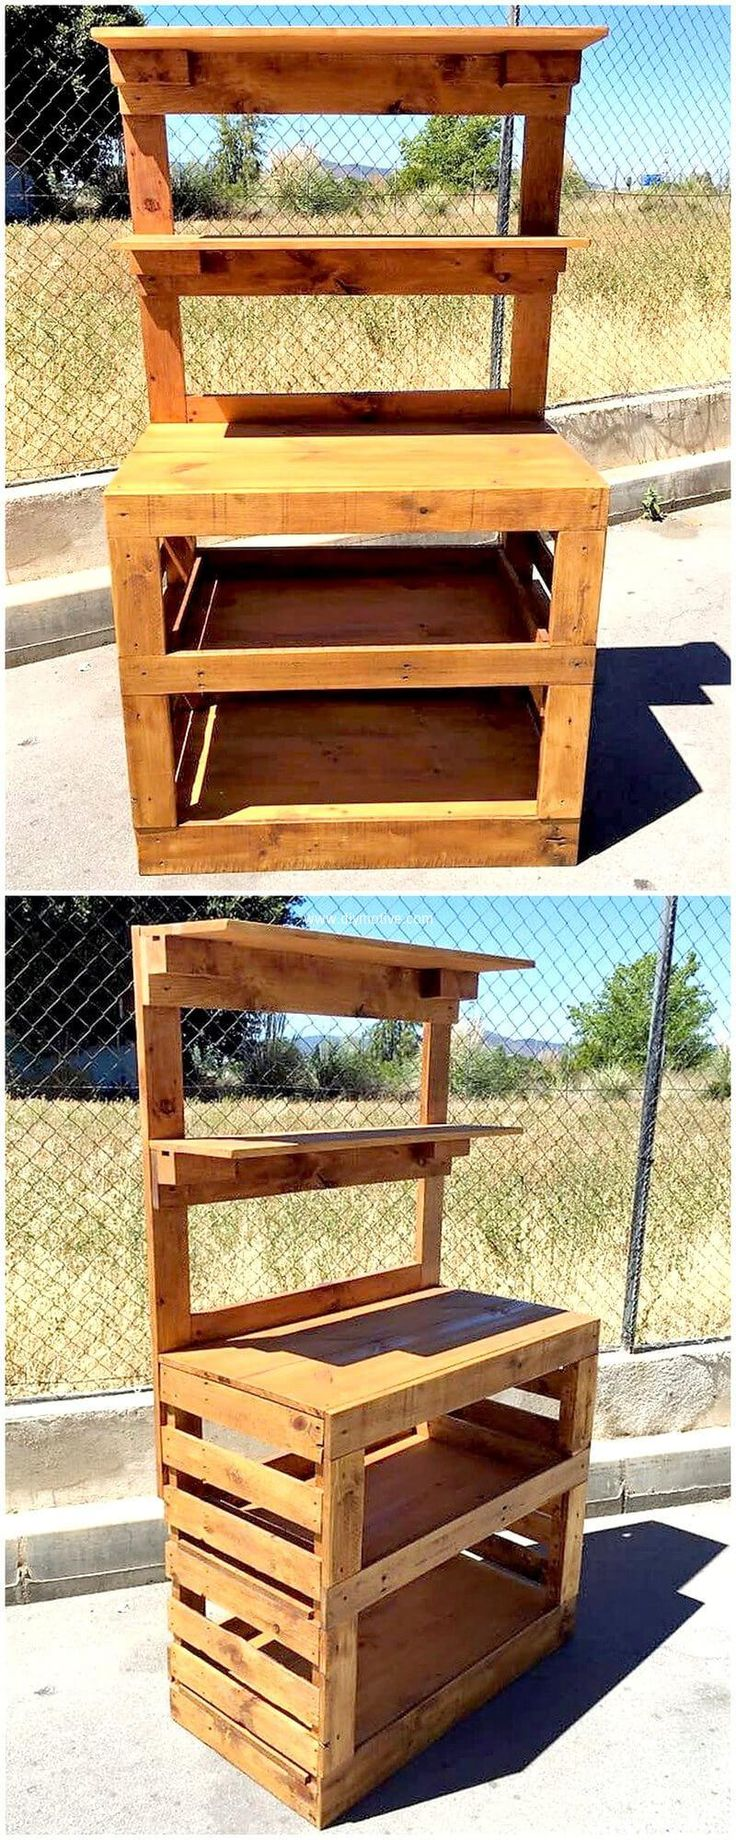 9899 best PALETY images on Pinterest | Pallet wood, Pallet projects and Pallet ideas